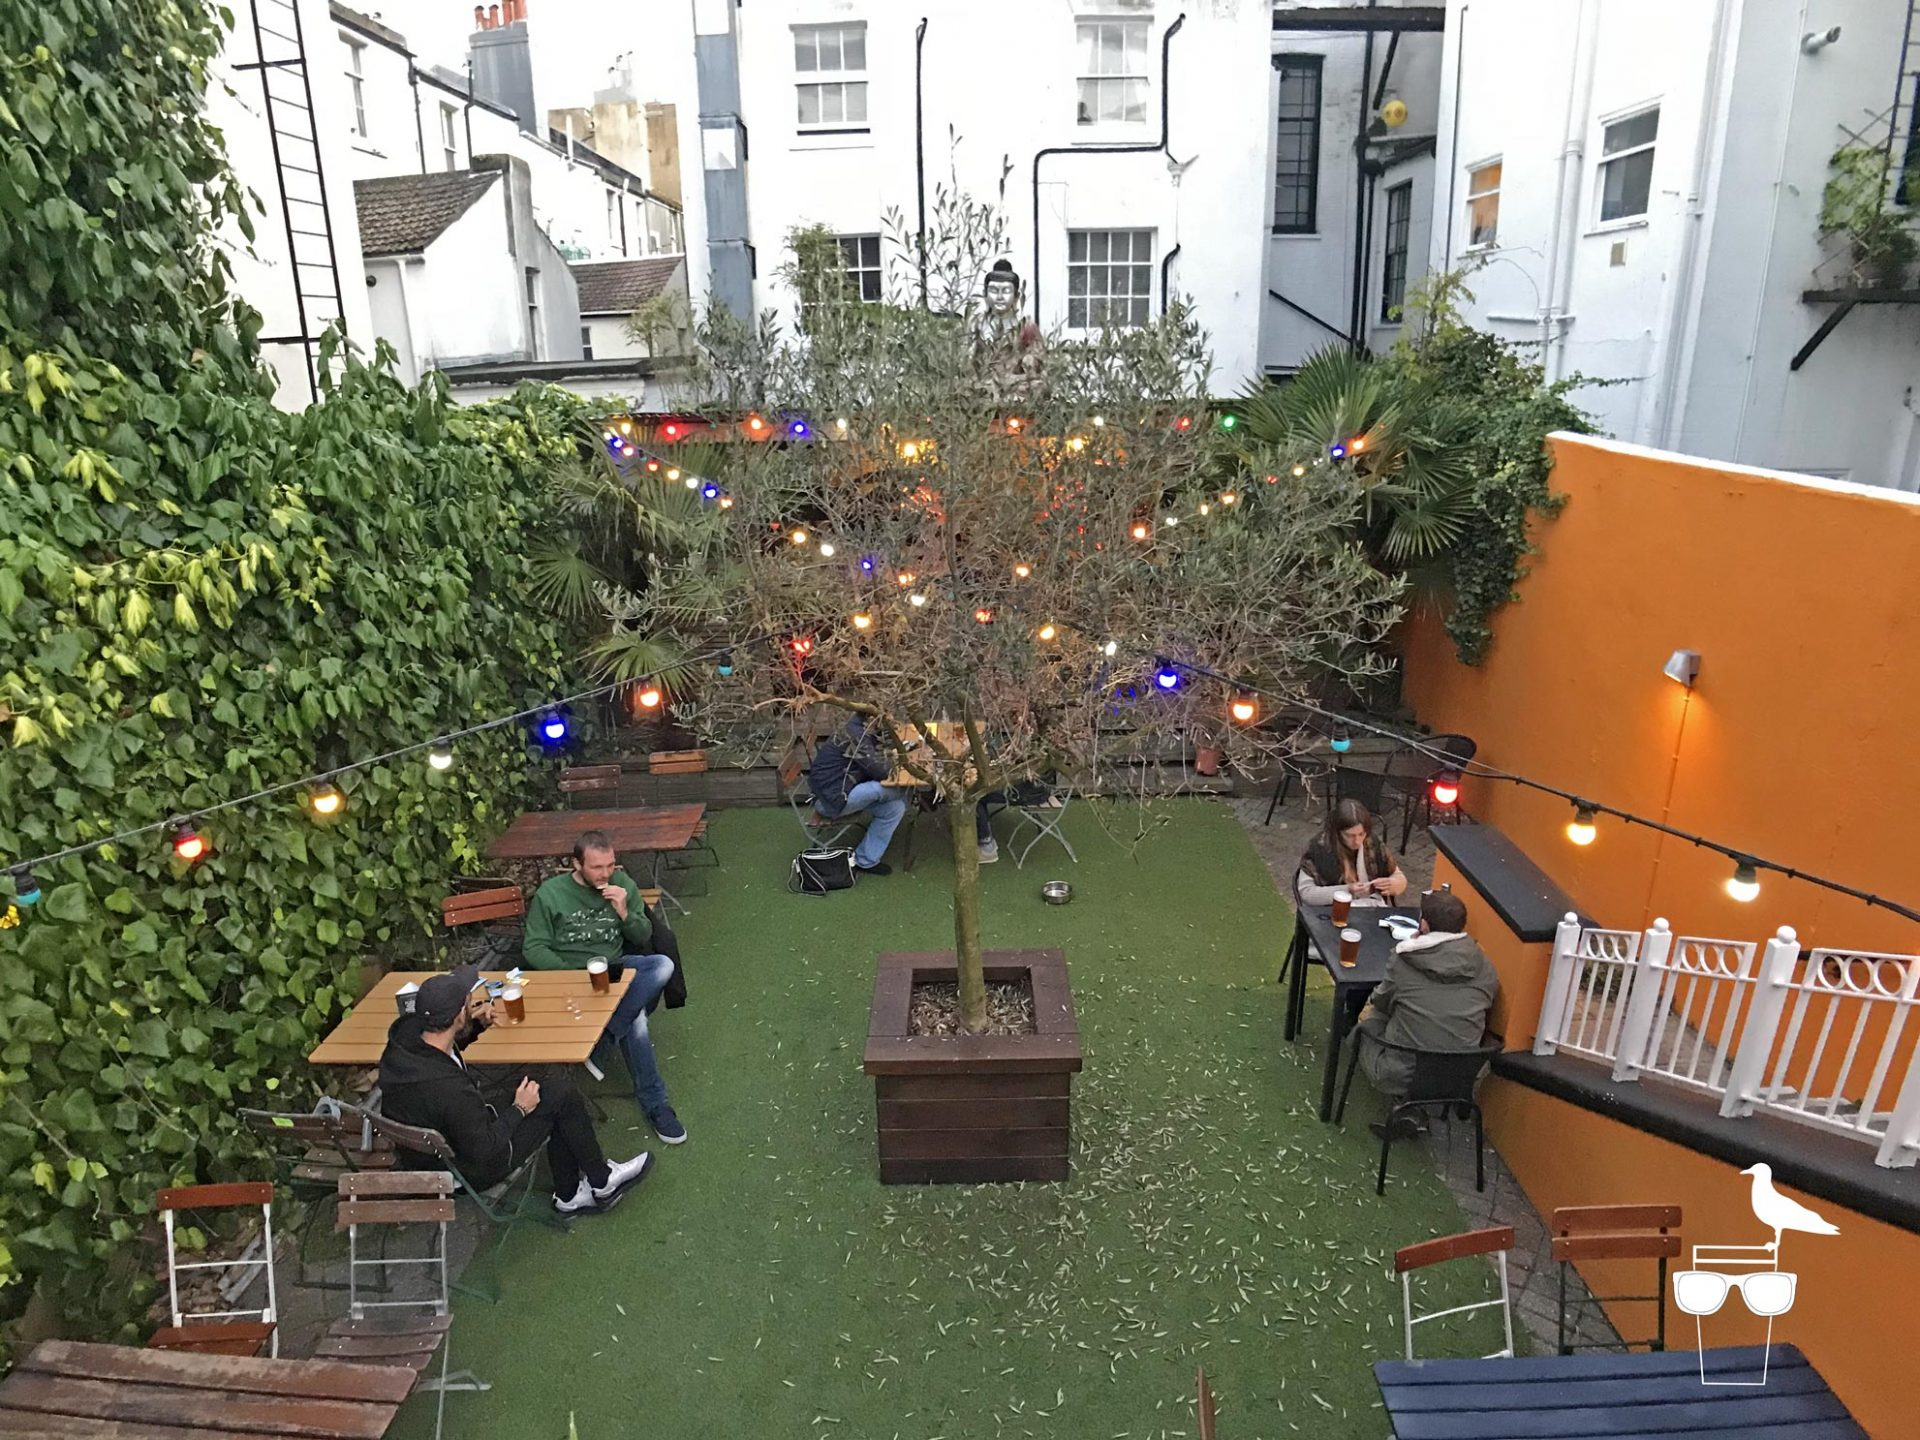 sidewinder-brighton-rear-garden-wide-view